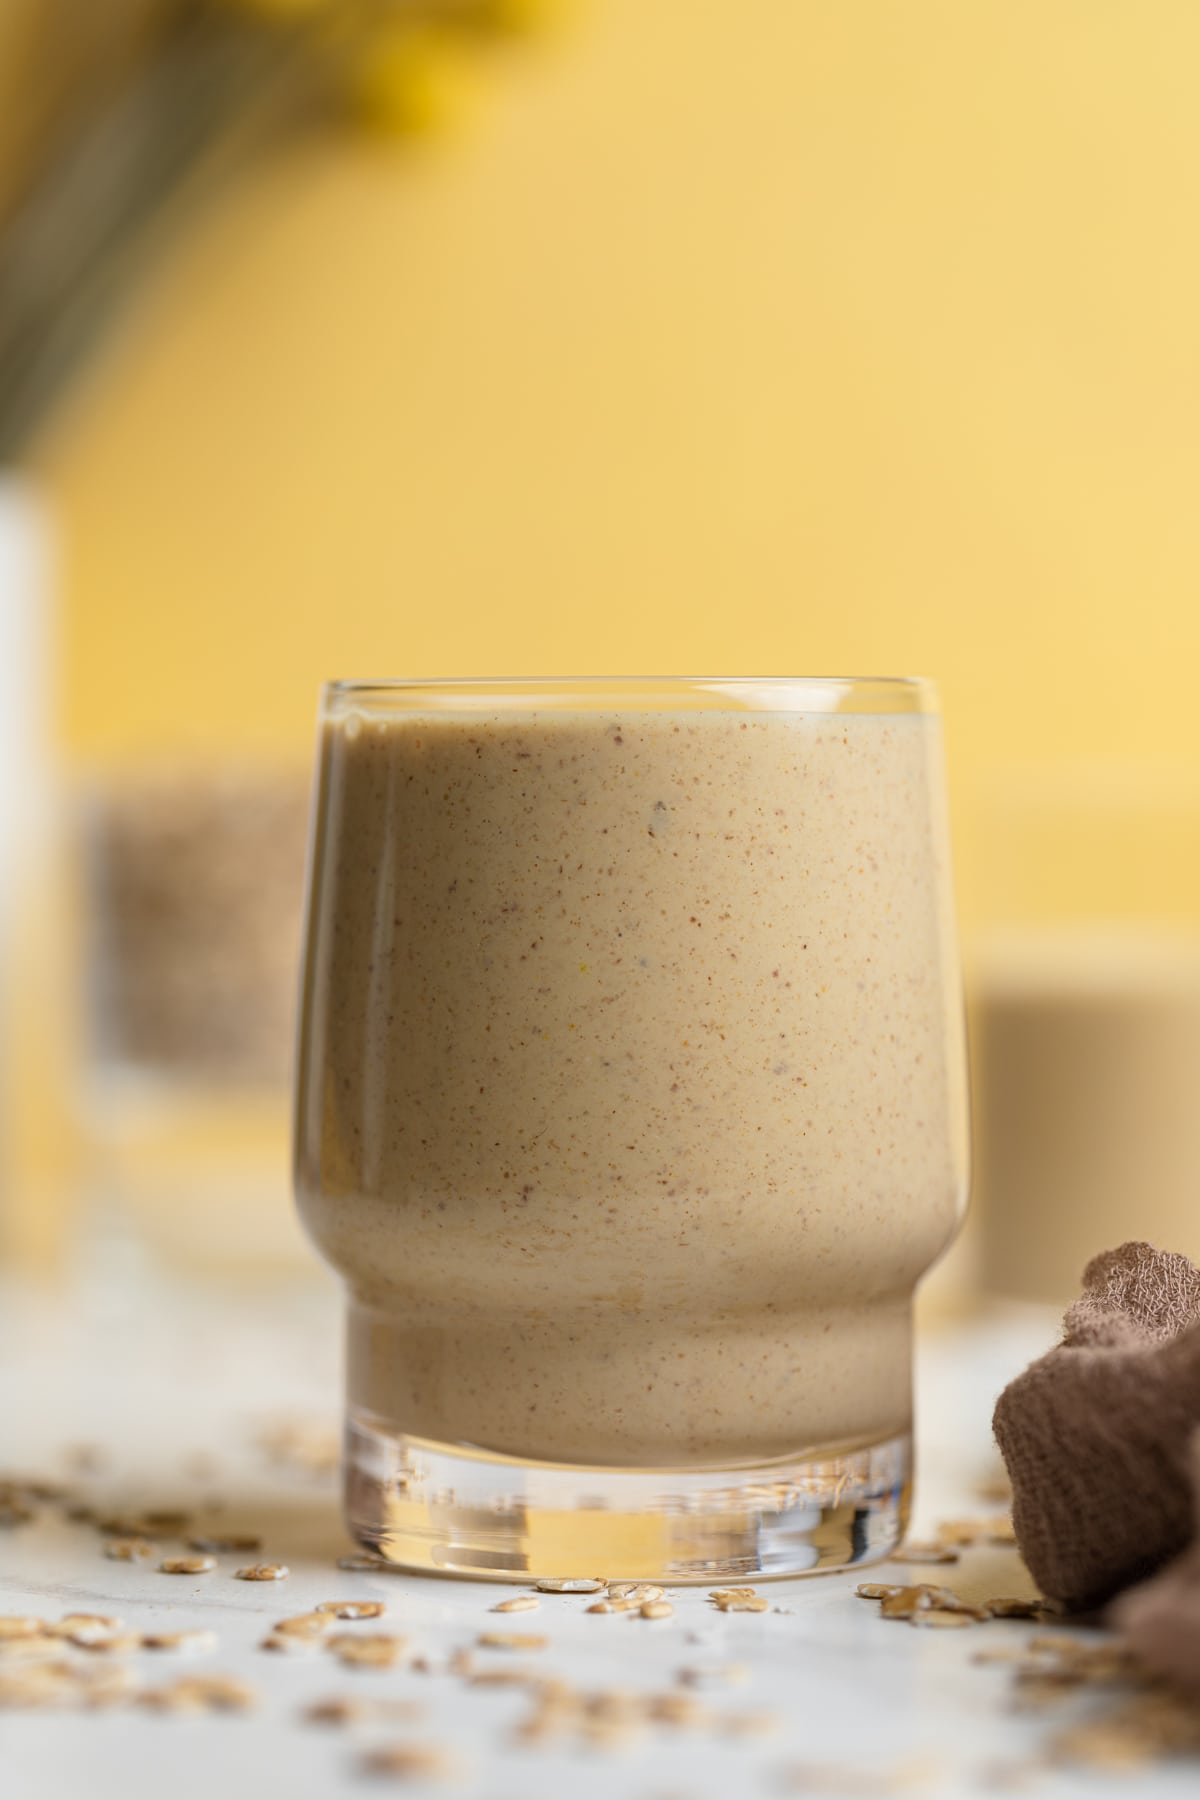 Easy Peanut Butter Banana Oats Smoothie